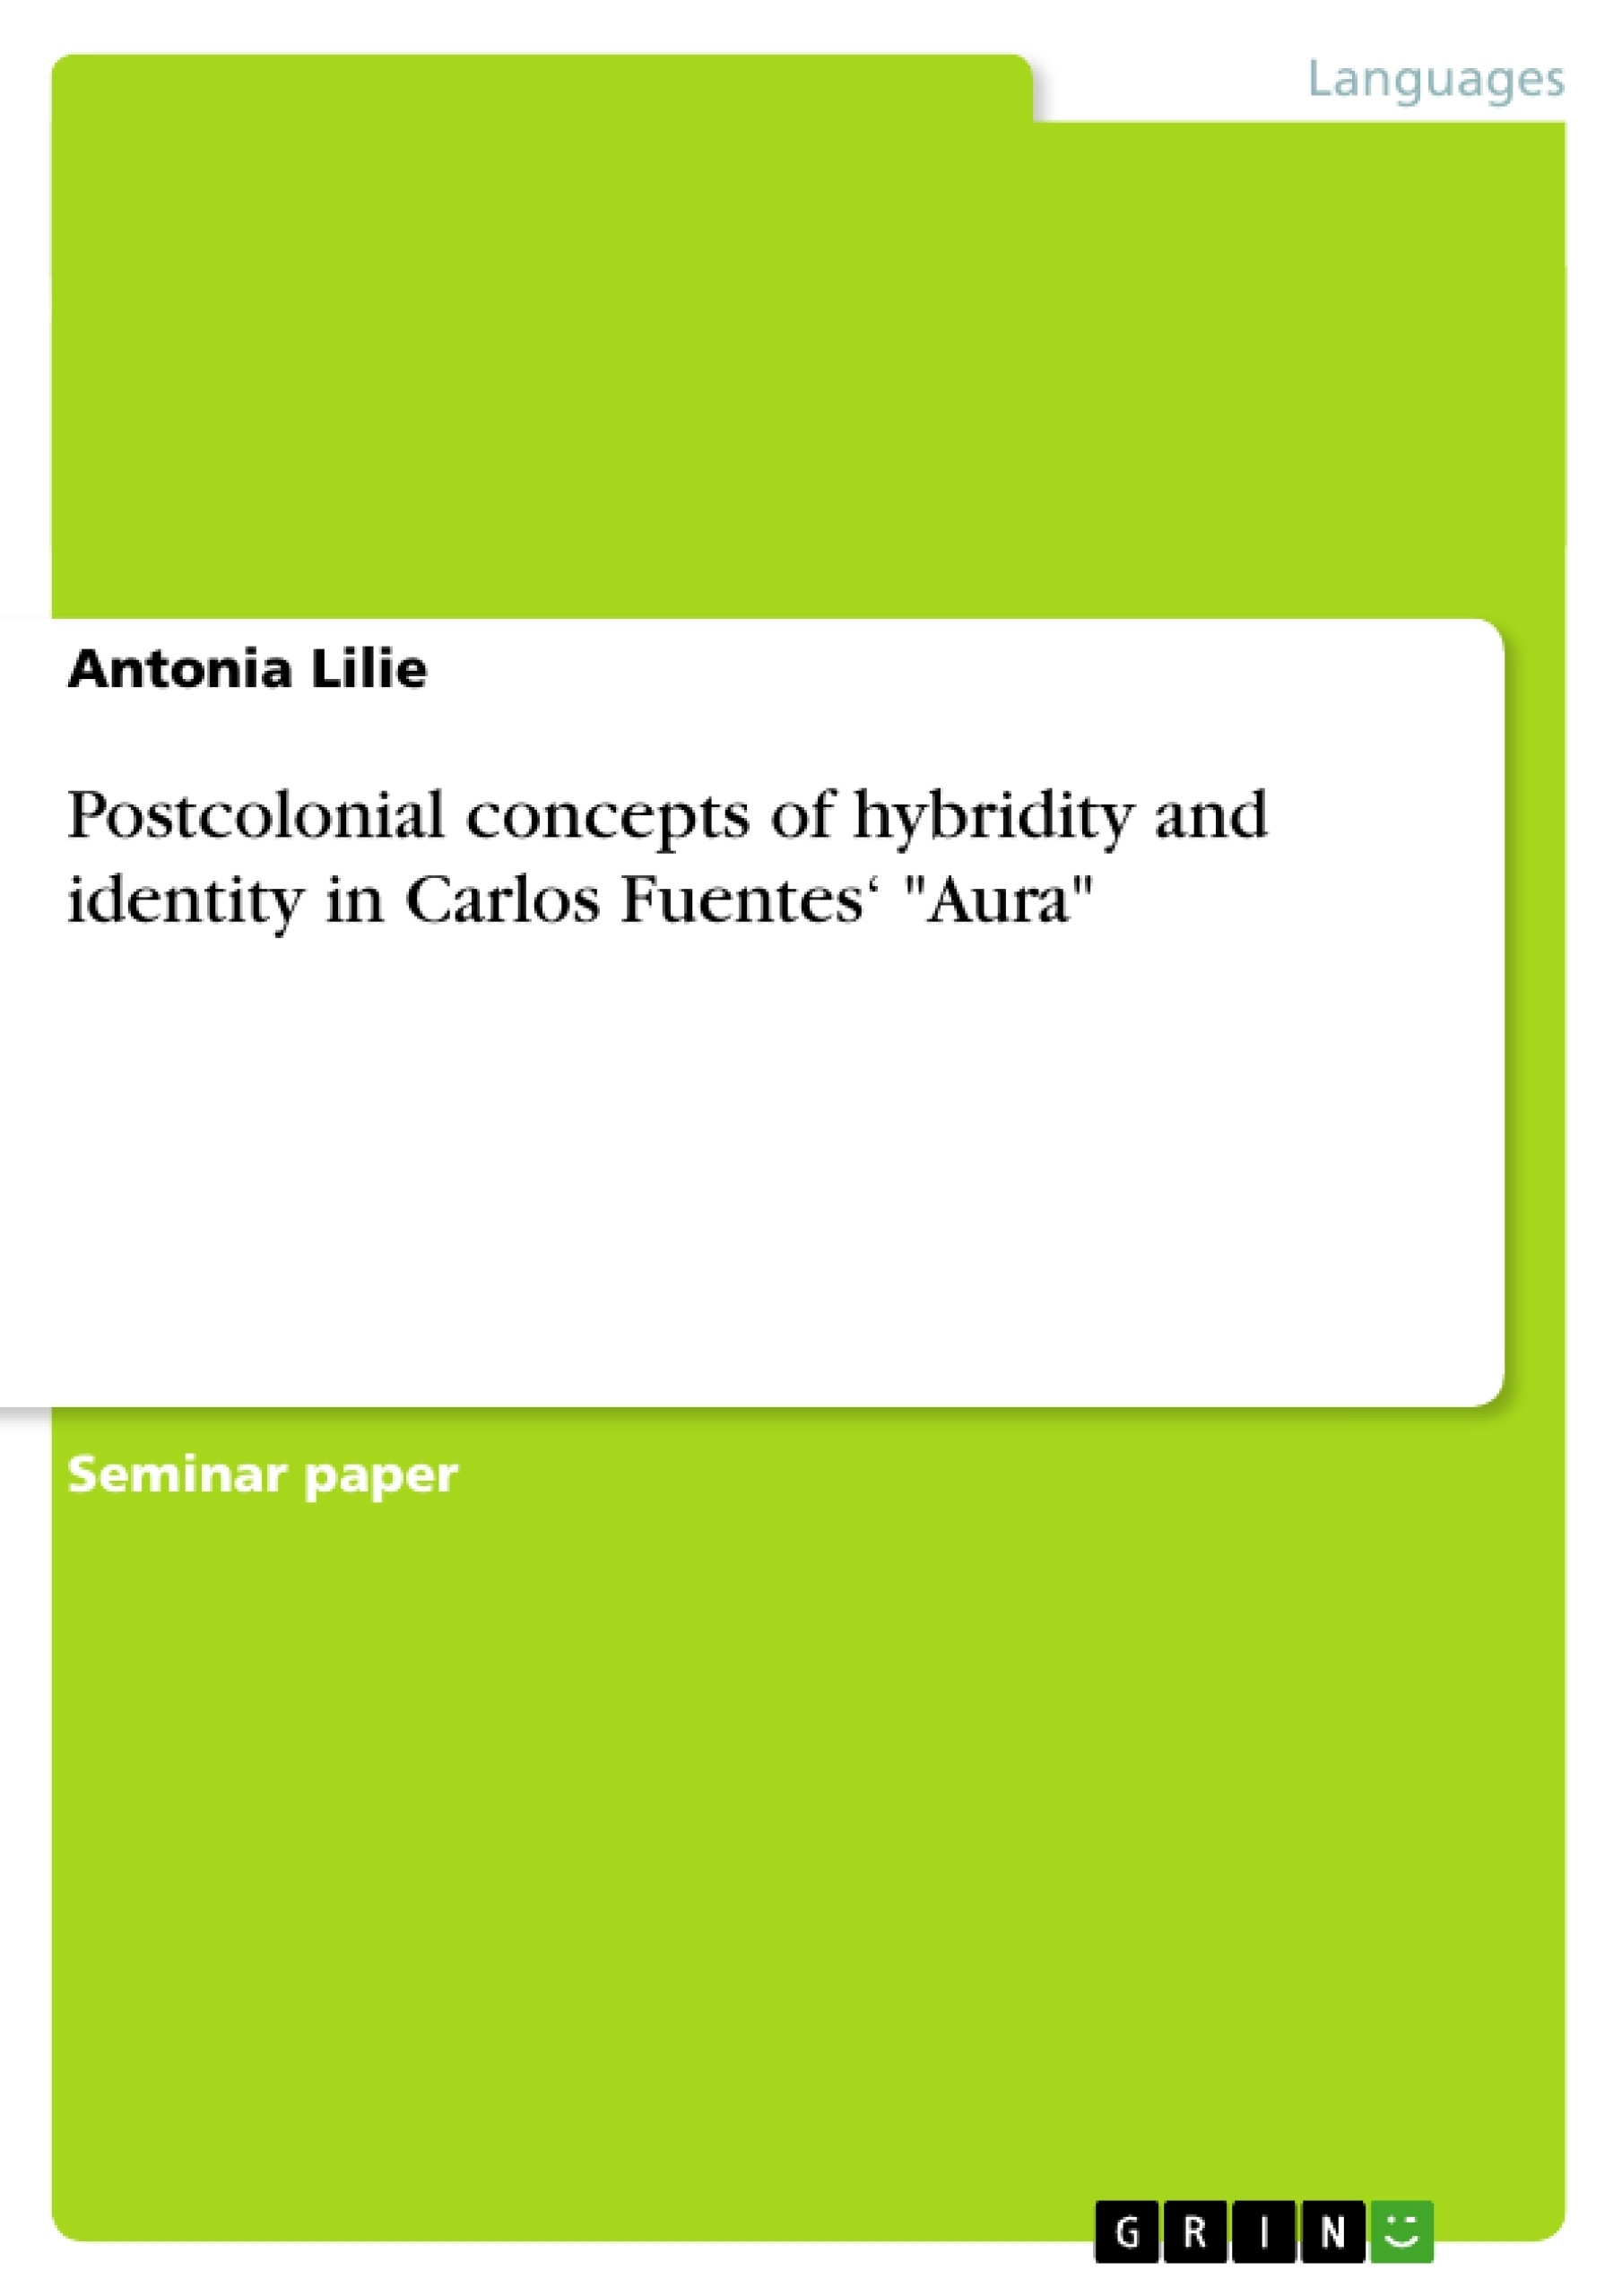 """Title: Postcolonial concepts of hybridity and identity in Carlos Fuentes' """"Aura"""""""